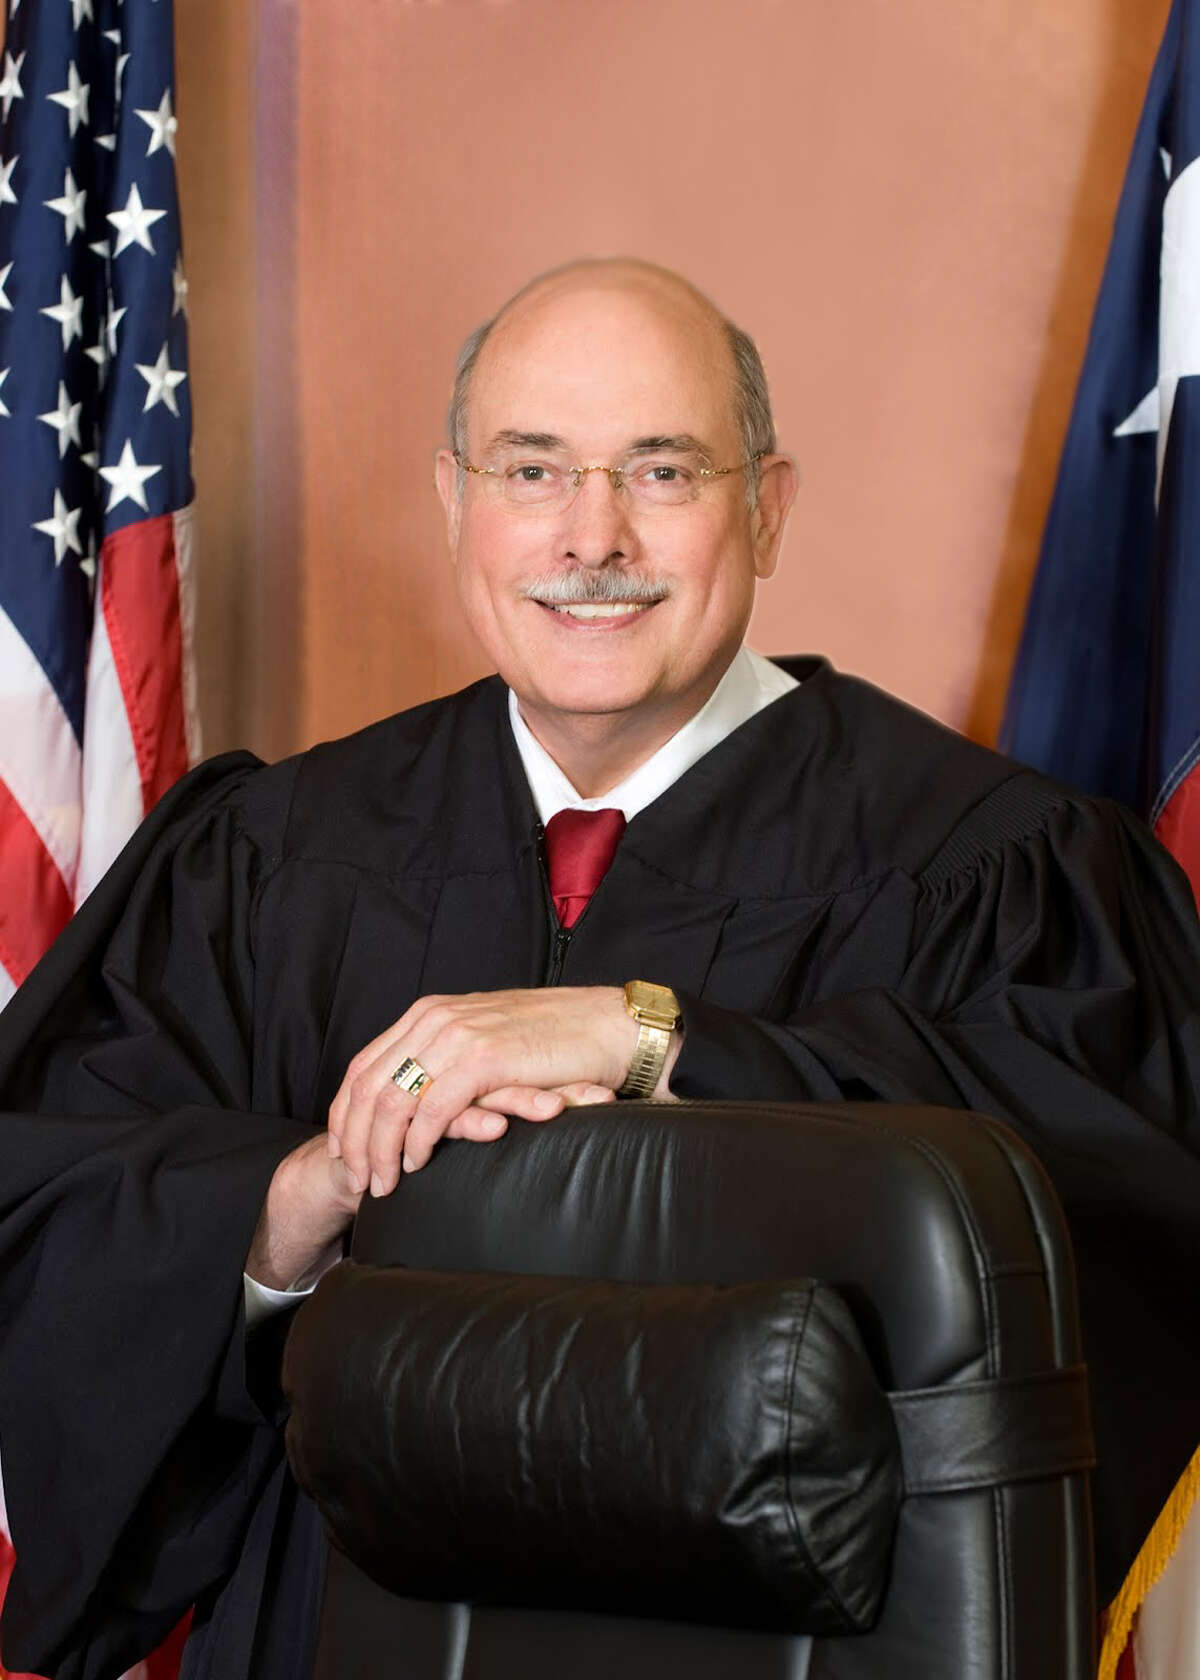 Herb Richie of the 337th District Court was one of the three active Harris County judges admonished.